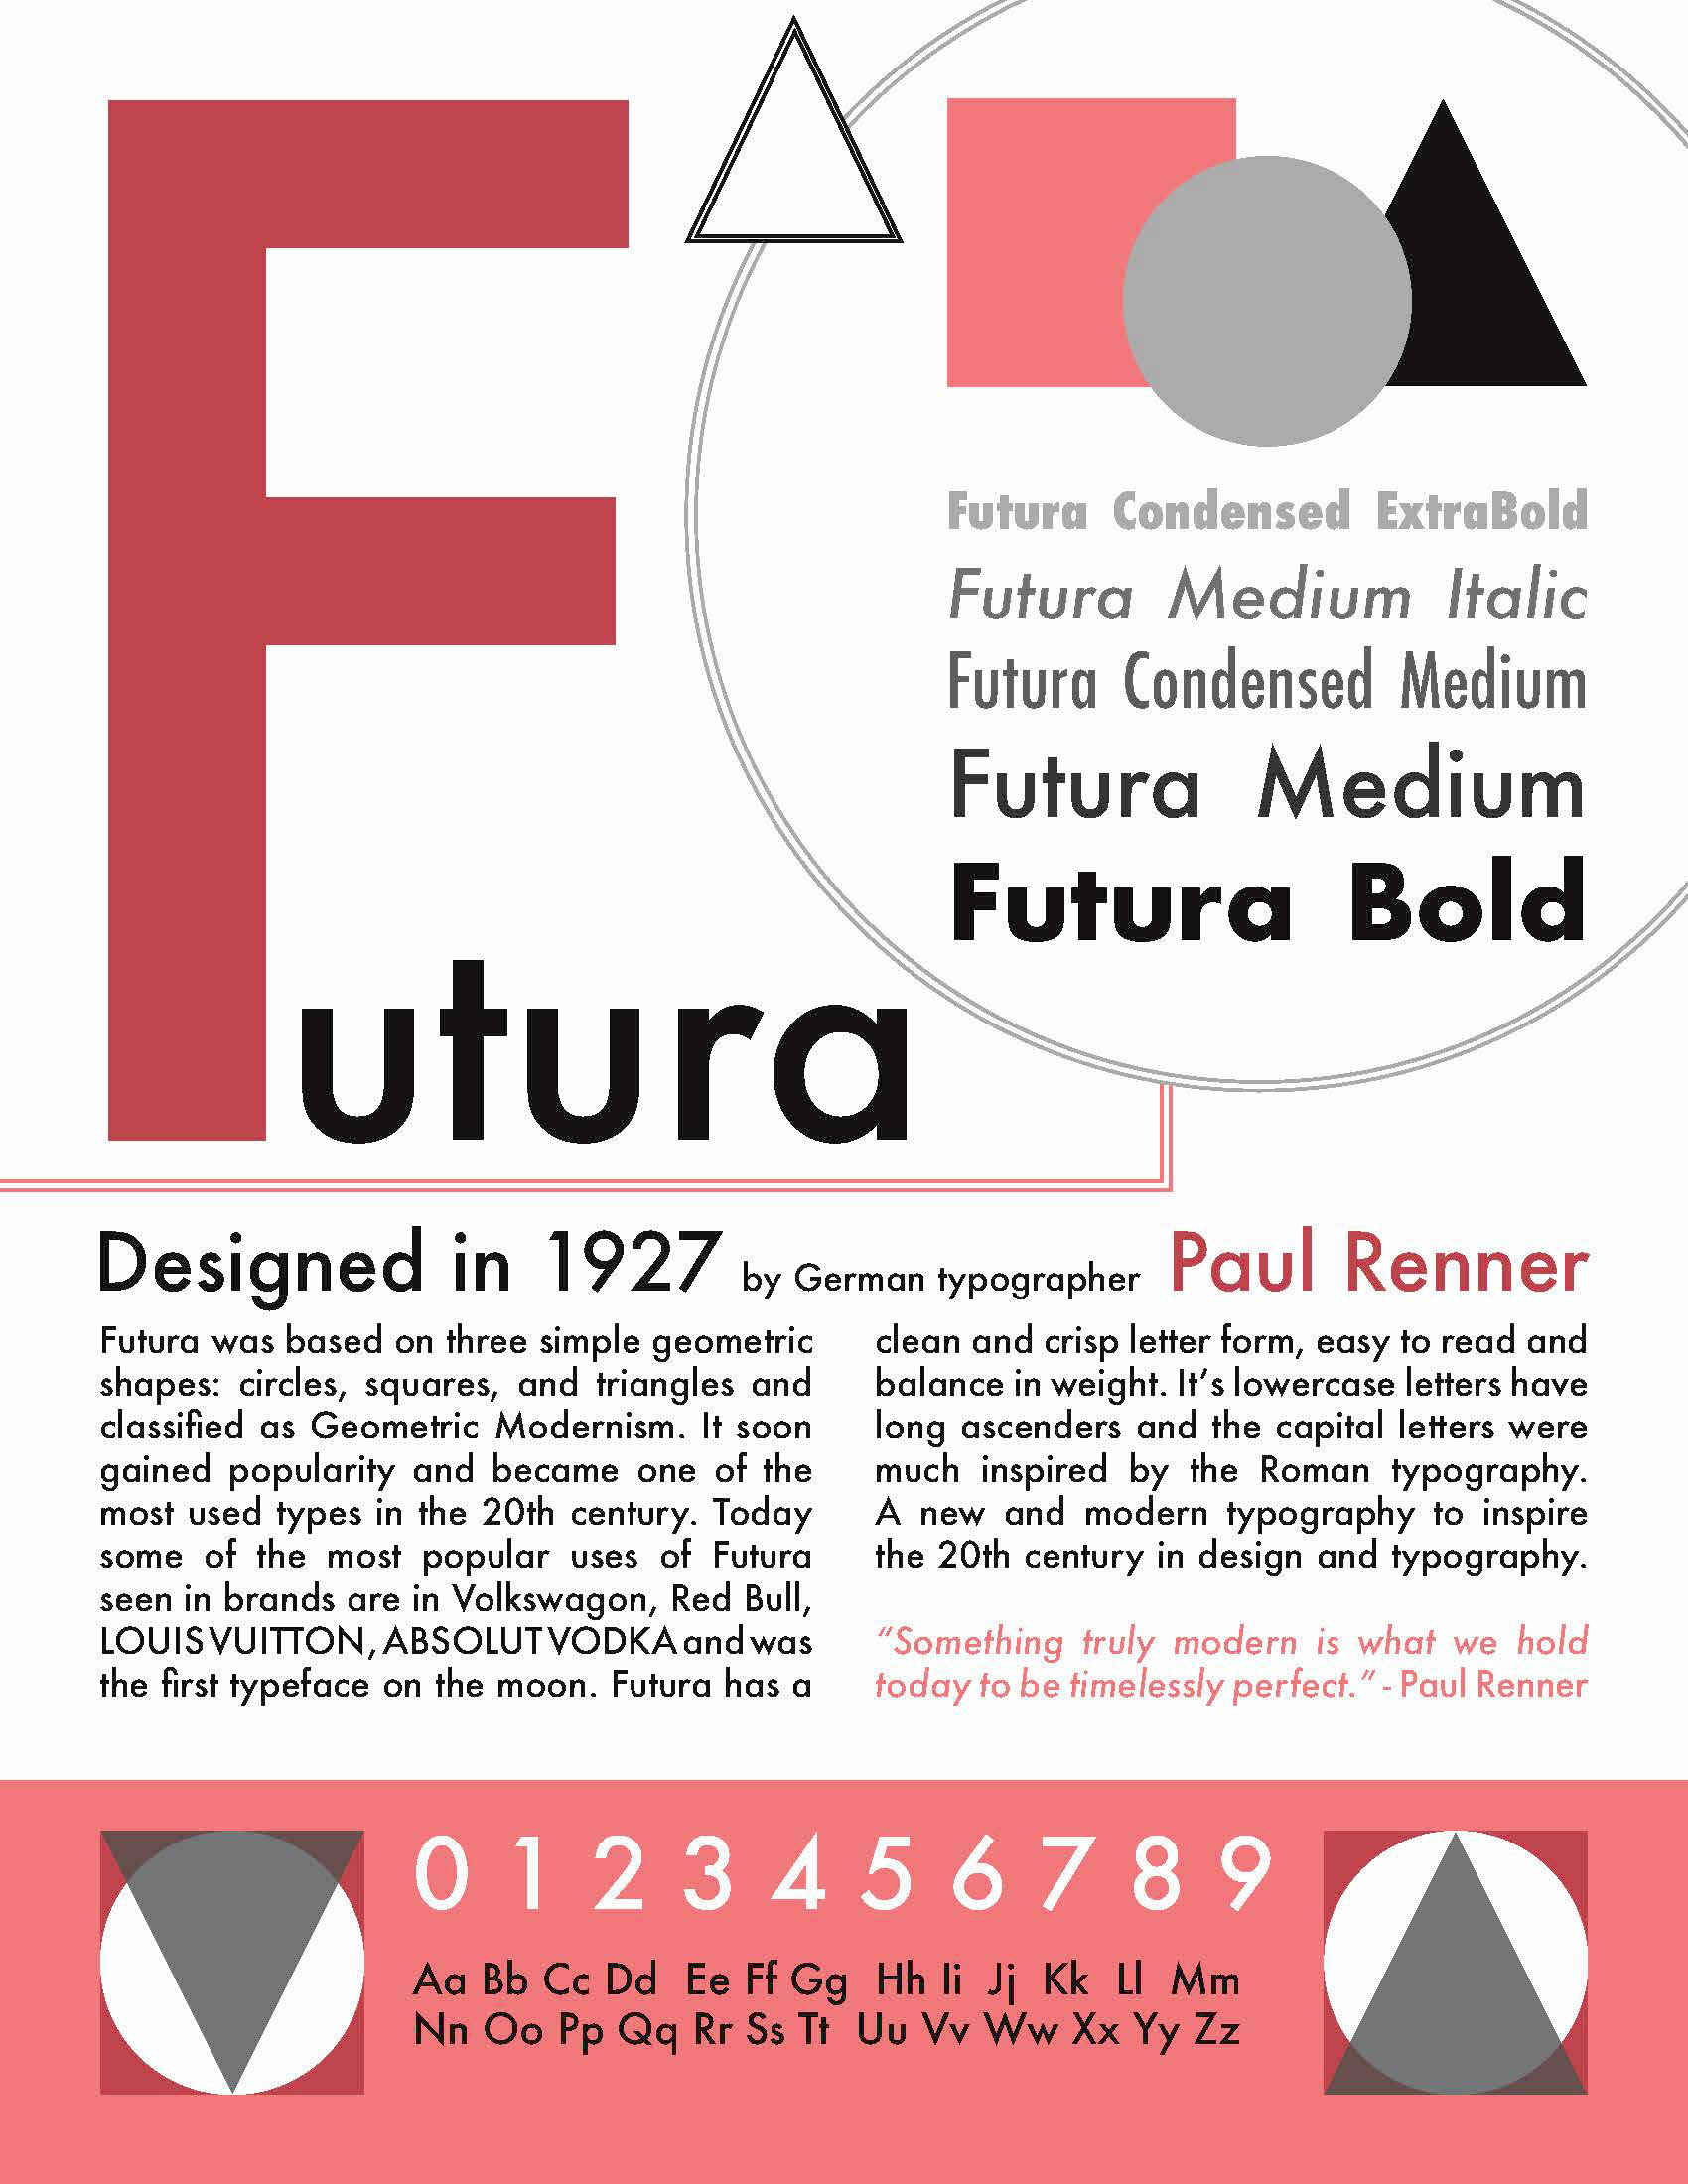 Futura Greek Condensed Medium